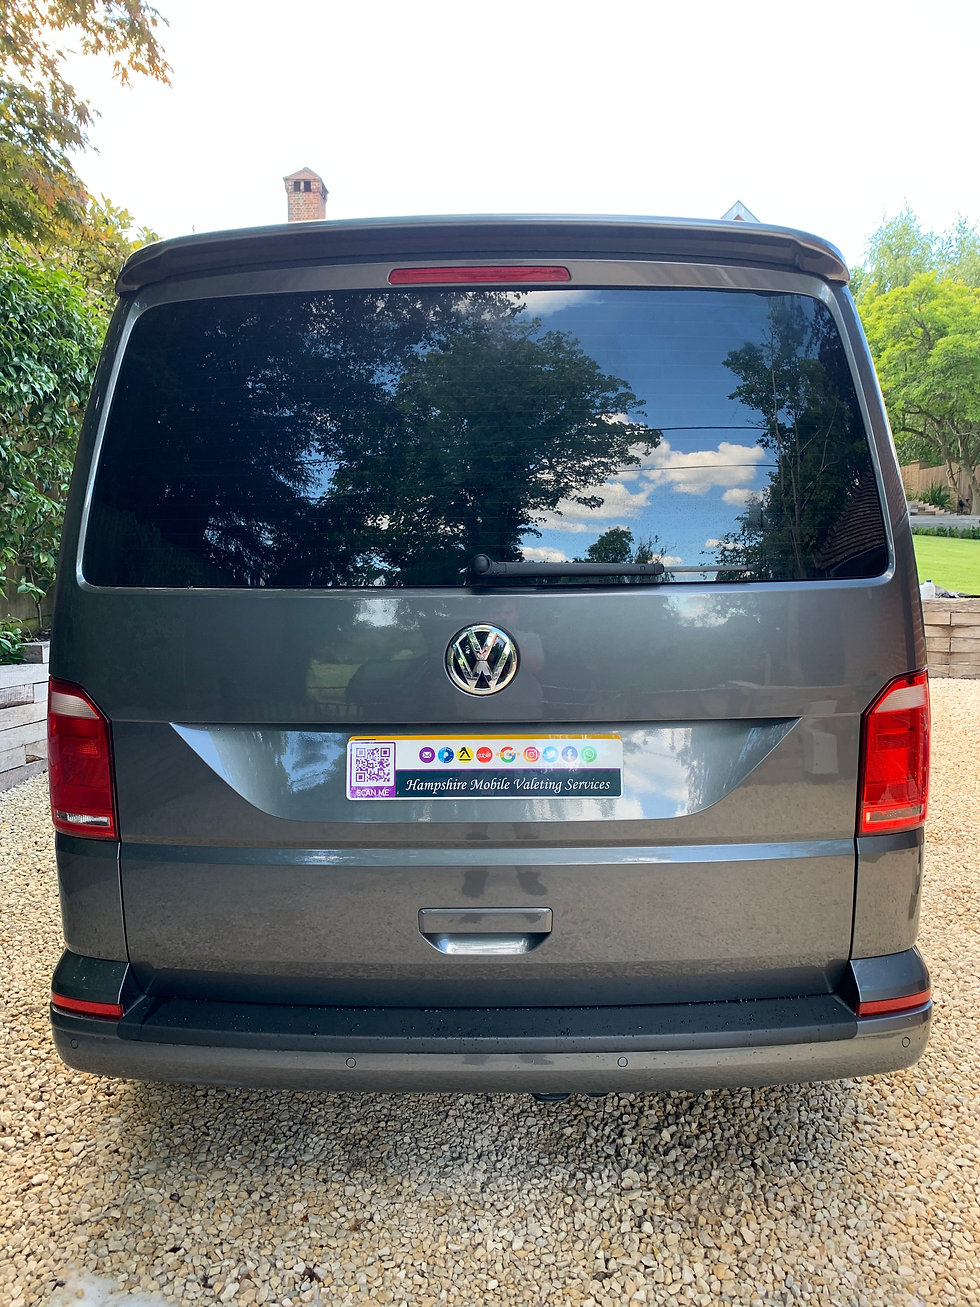 Clean camper van with company display plats with scenic driveway back drop